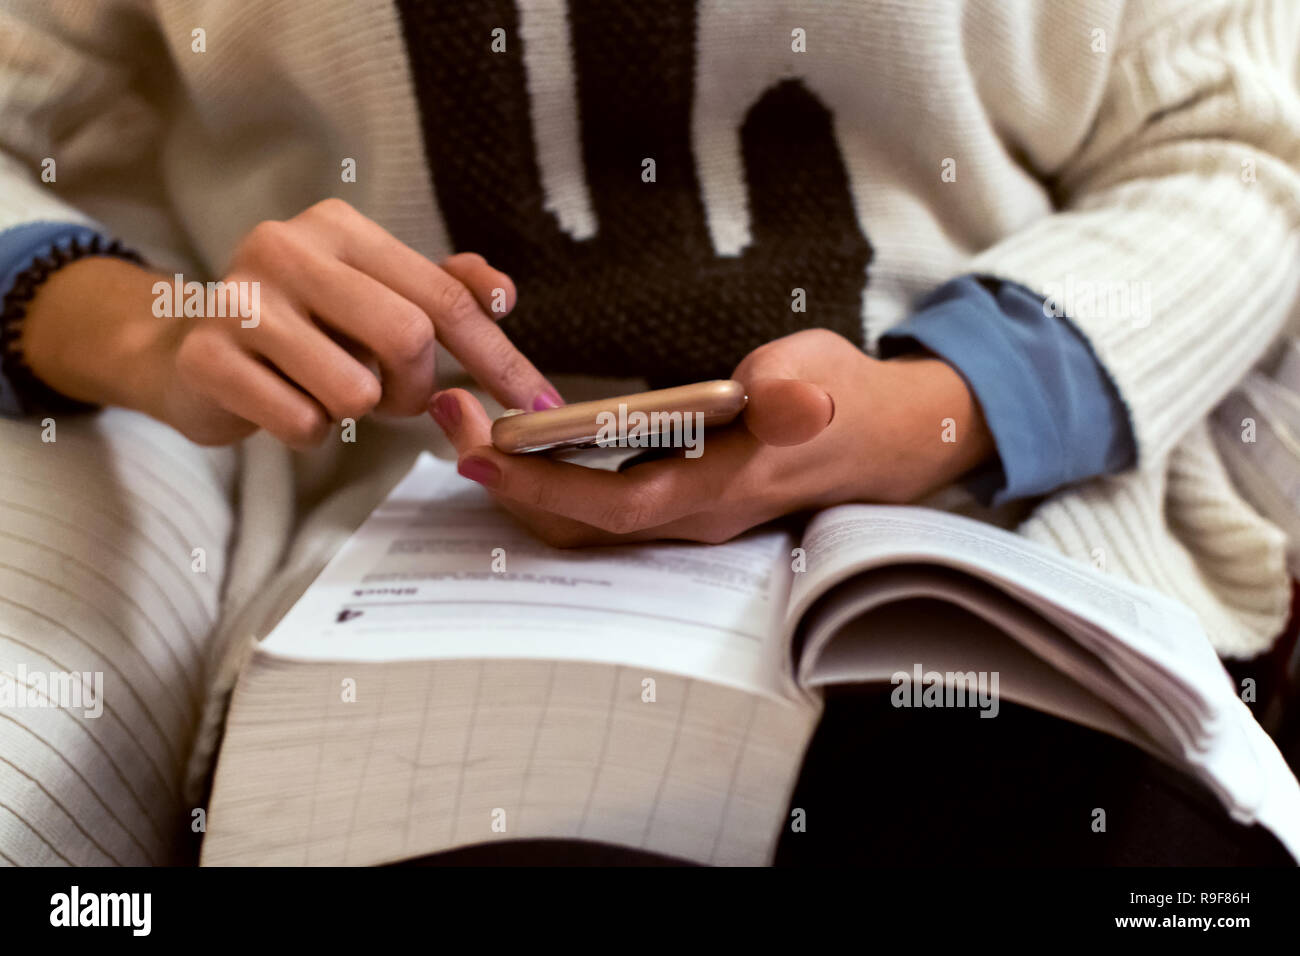 Student reading a book and using her phone at the same time. Technology and books. Low angle of woman - Stock Image